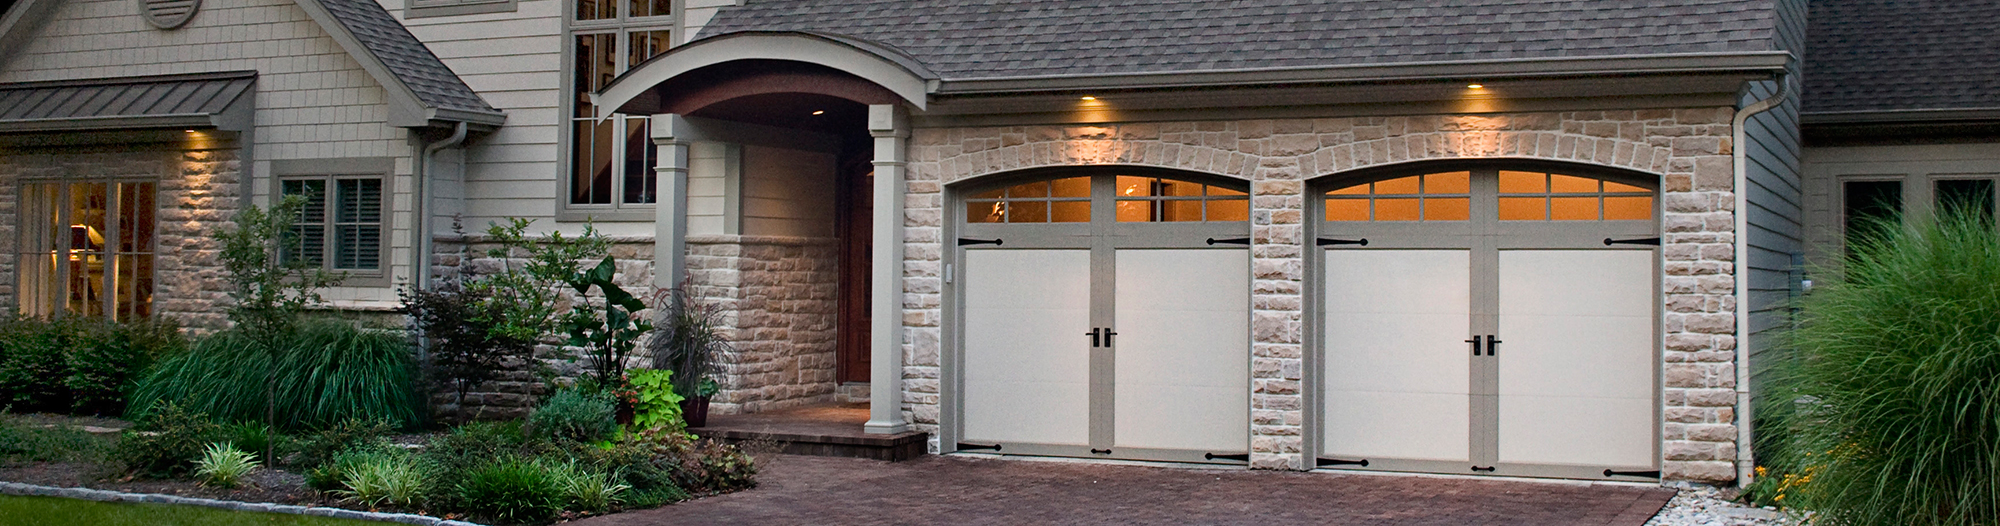 Maple Garage Doors Garage Door Repair Nj Garage Door Service Hunter Door